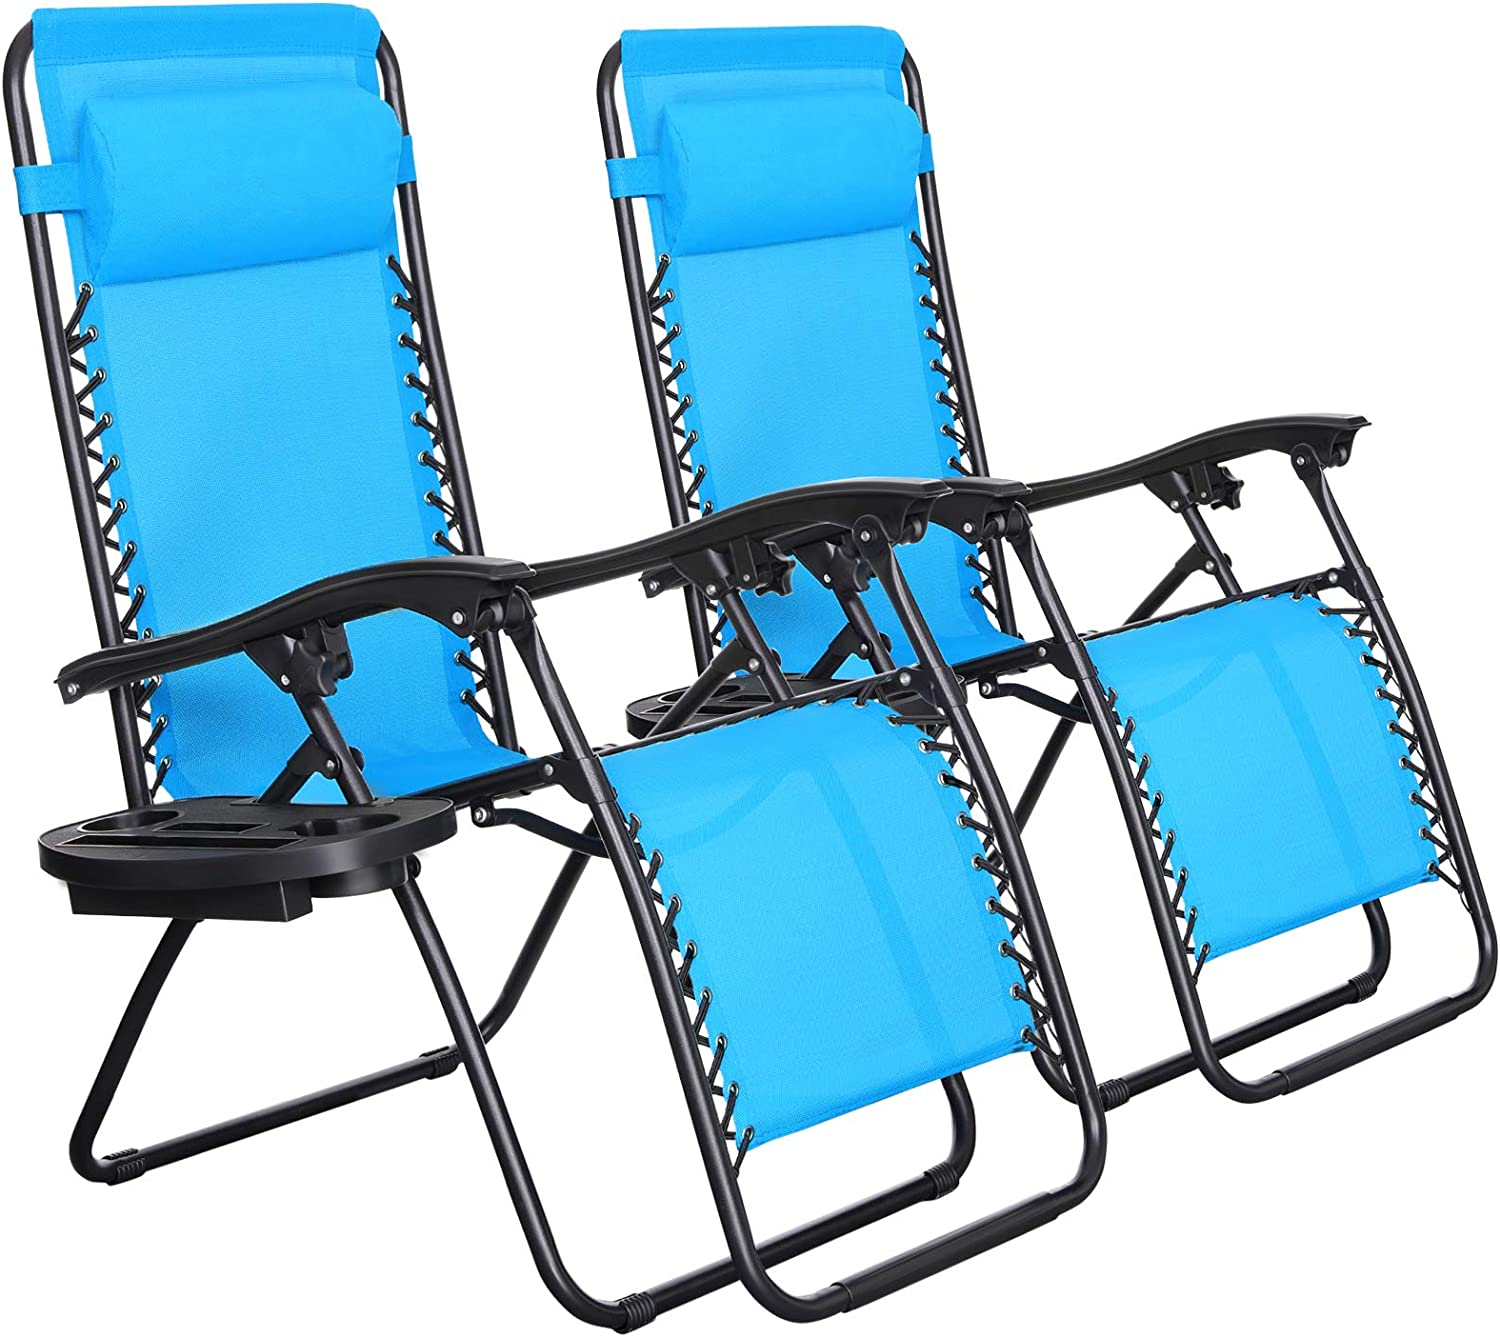 SONGMICS Zero Gravity Chairs, Set of 2 Outdoor Lounge Chairs, Patio Chaise Lounges, Reclining Comfortable Ergonomic Foldable and Lockable, with Headrest and Cup Holder, Blue UGCB001Q01